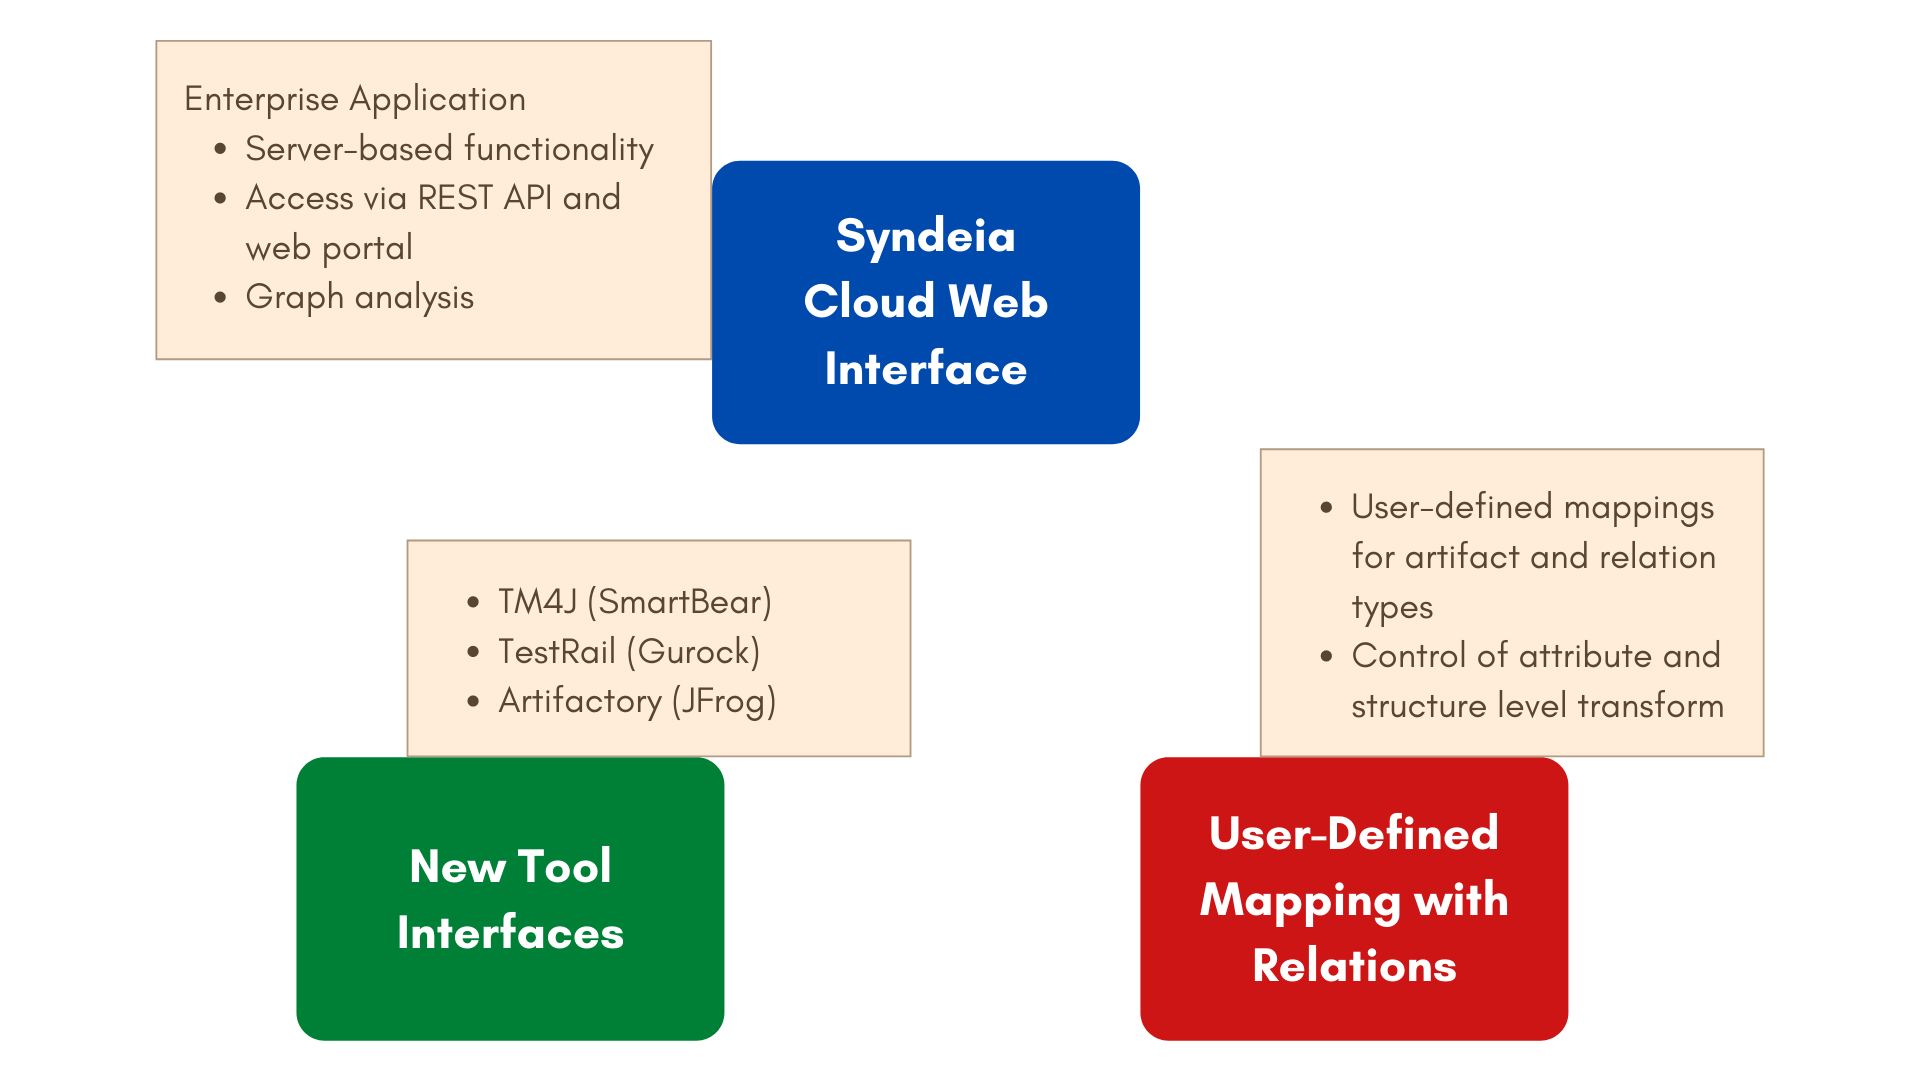 What's new in Syndeia 3.3 new features mbse